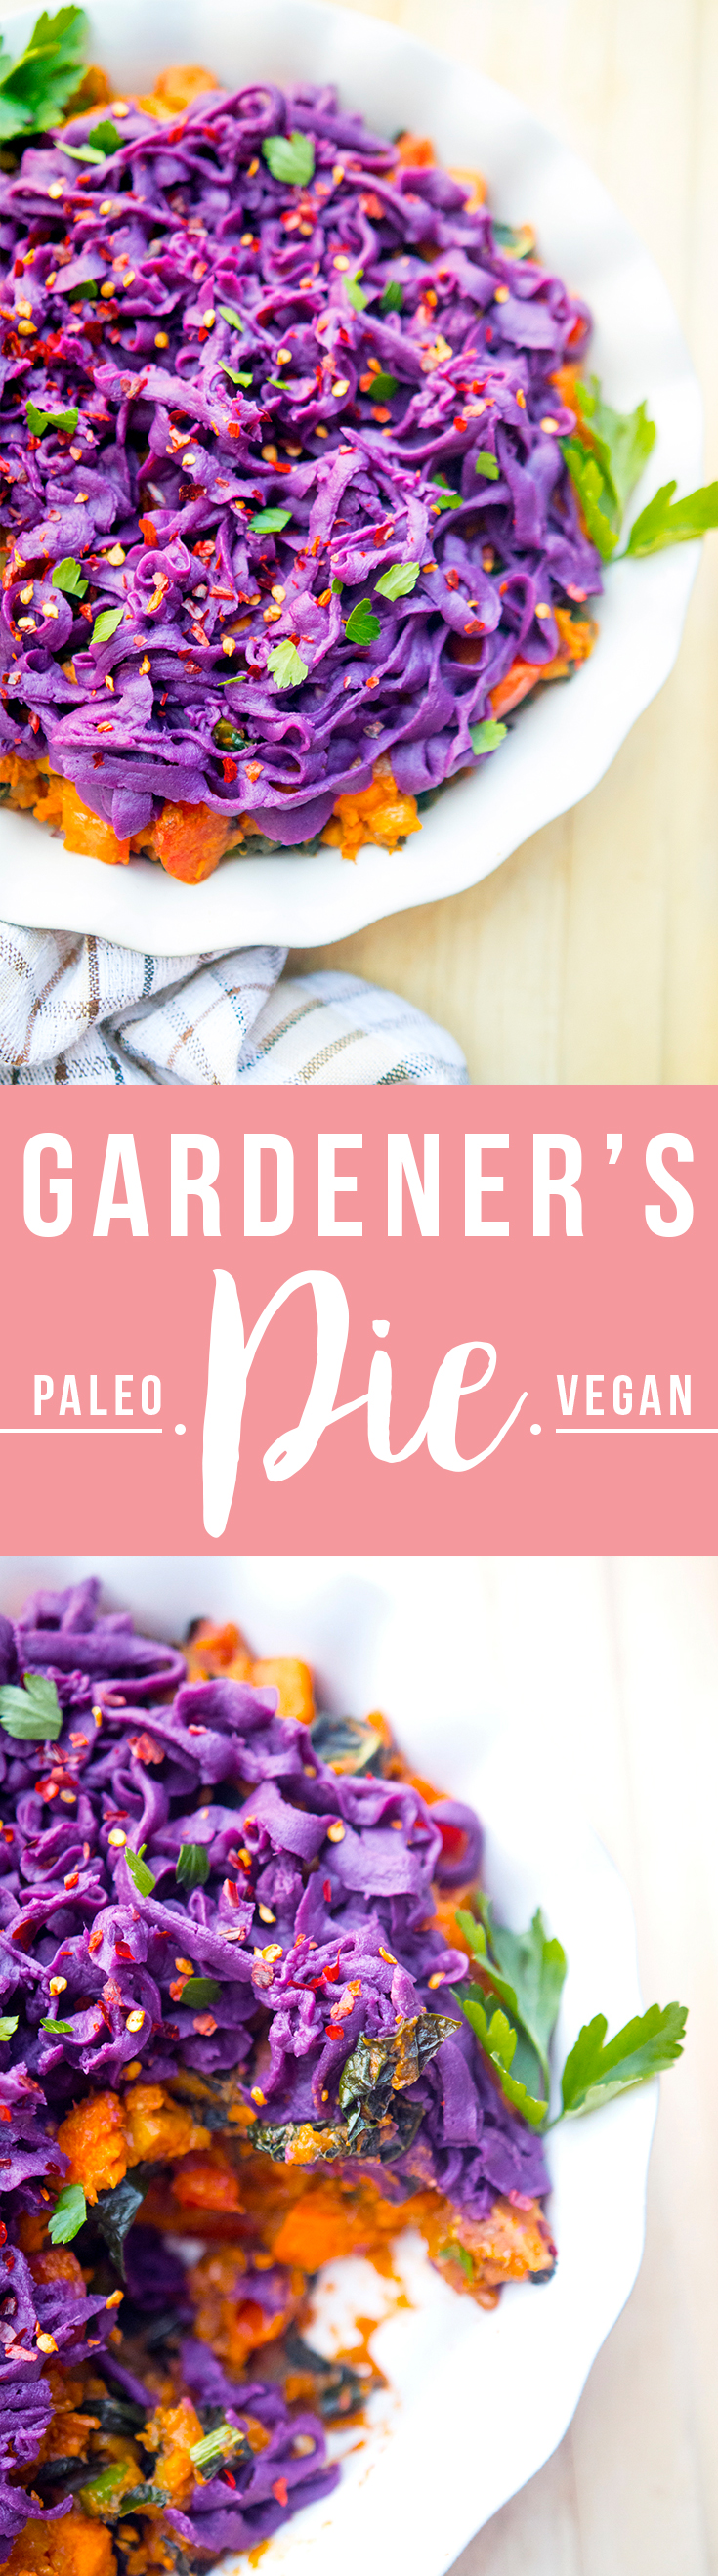 Gardener's Pie (curried vegetables under a purple sweet potato topping) with Imperfect Produce, a startup that helps prevent food waste.   Fresh Planet Flavor